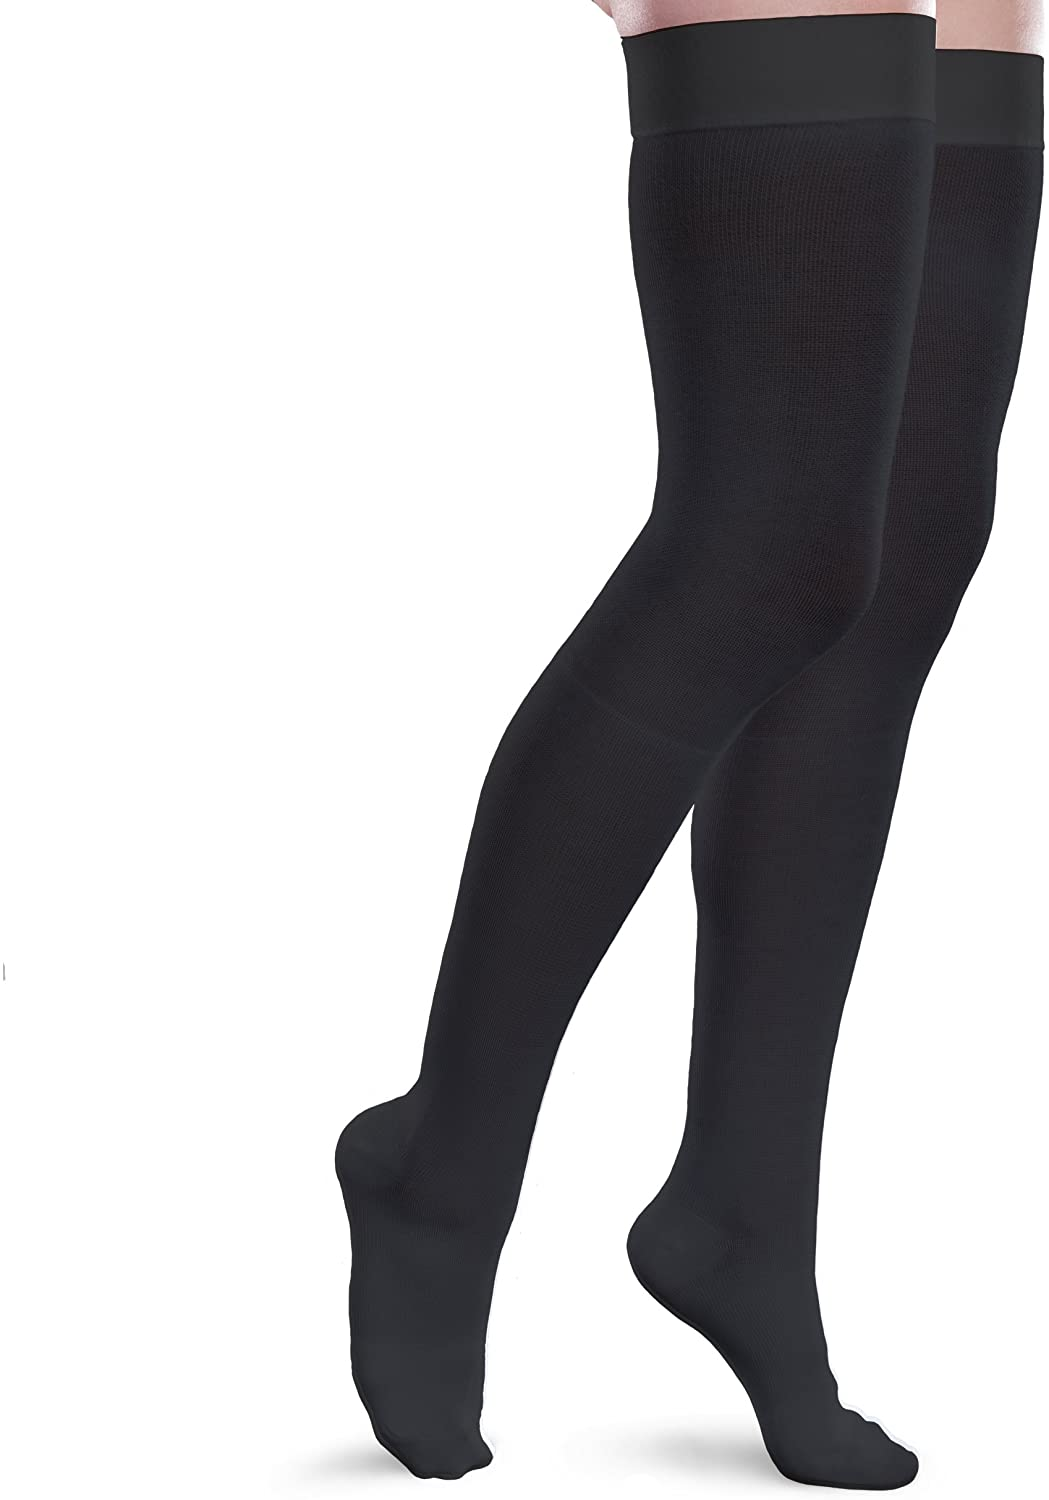 Therafirm Core-Spun 20-30mmHg Moderate Graduated Compression Support Thigh High Socks (Black, XXL Long)